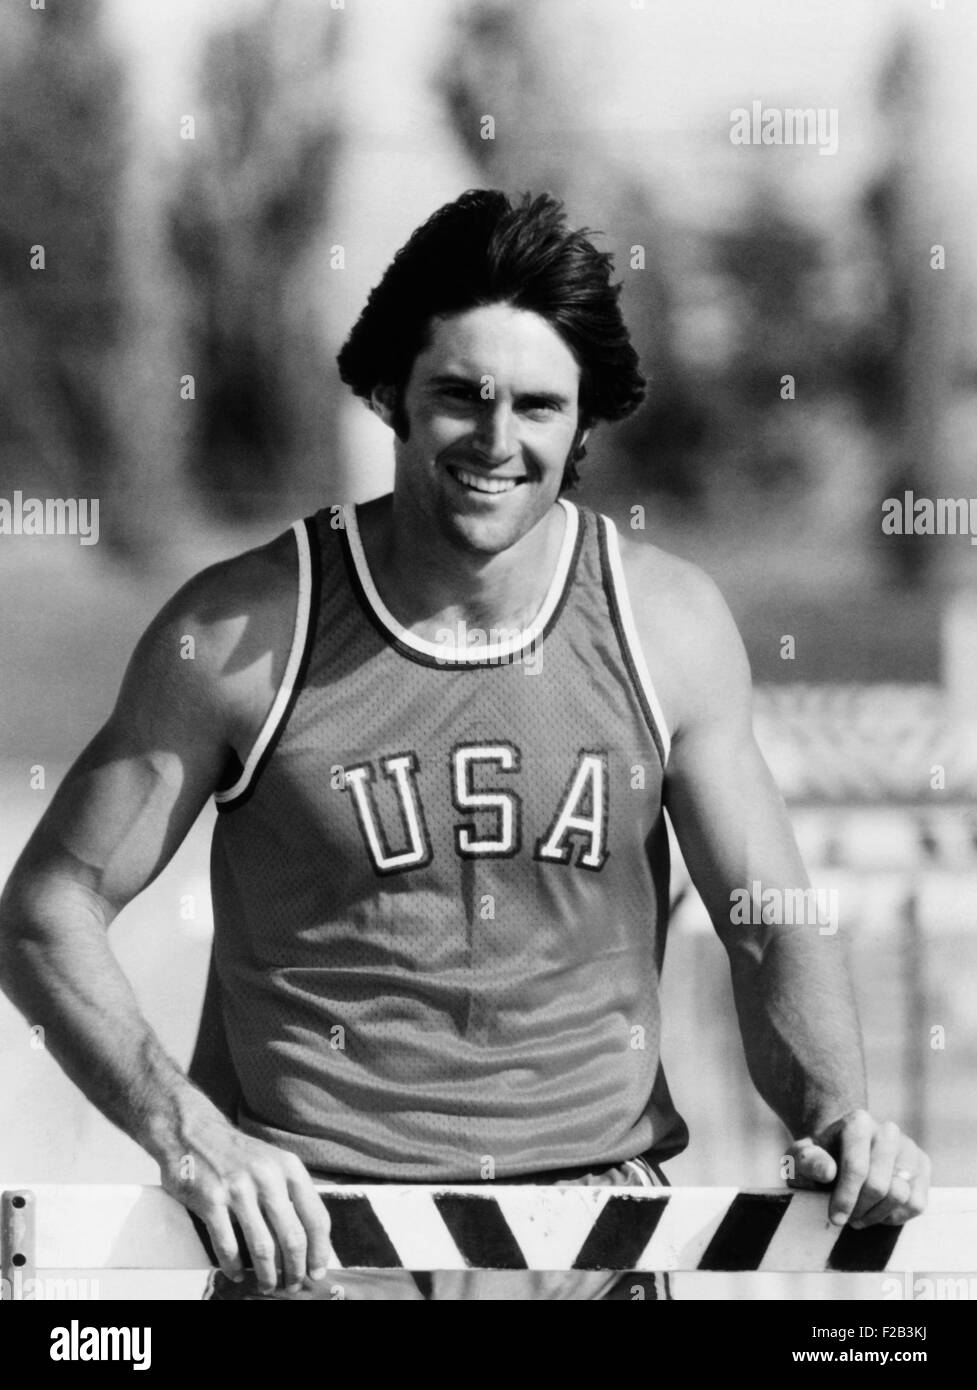 Bruce Jenner won the Decathlon in the 1976 Summer Olympic Games in Montreal. He scored a world record of 8618 points. - Stock Image